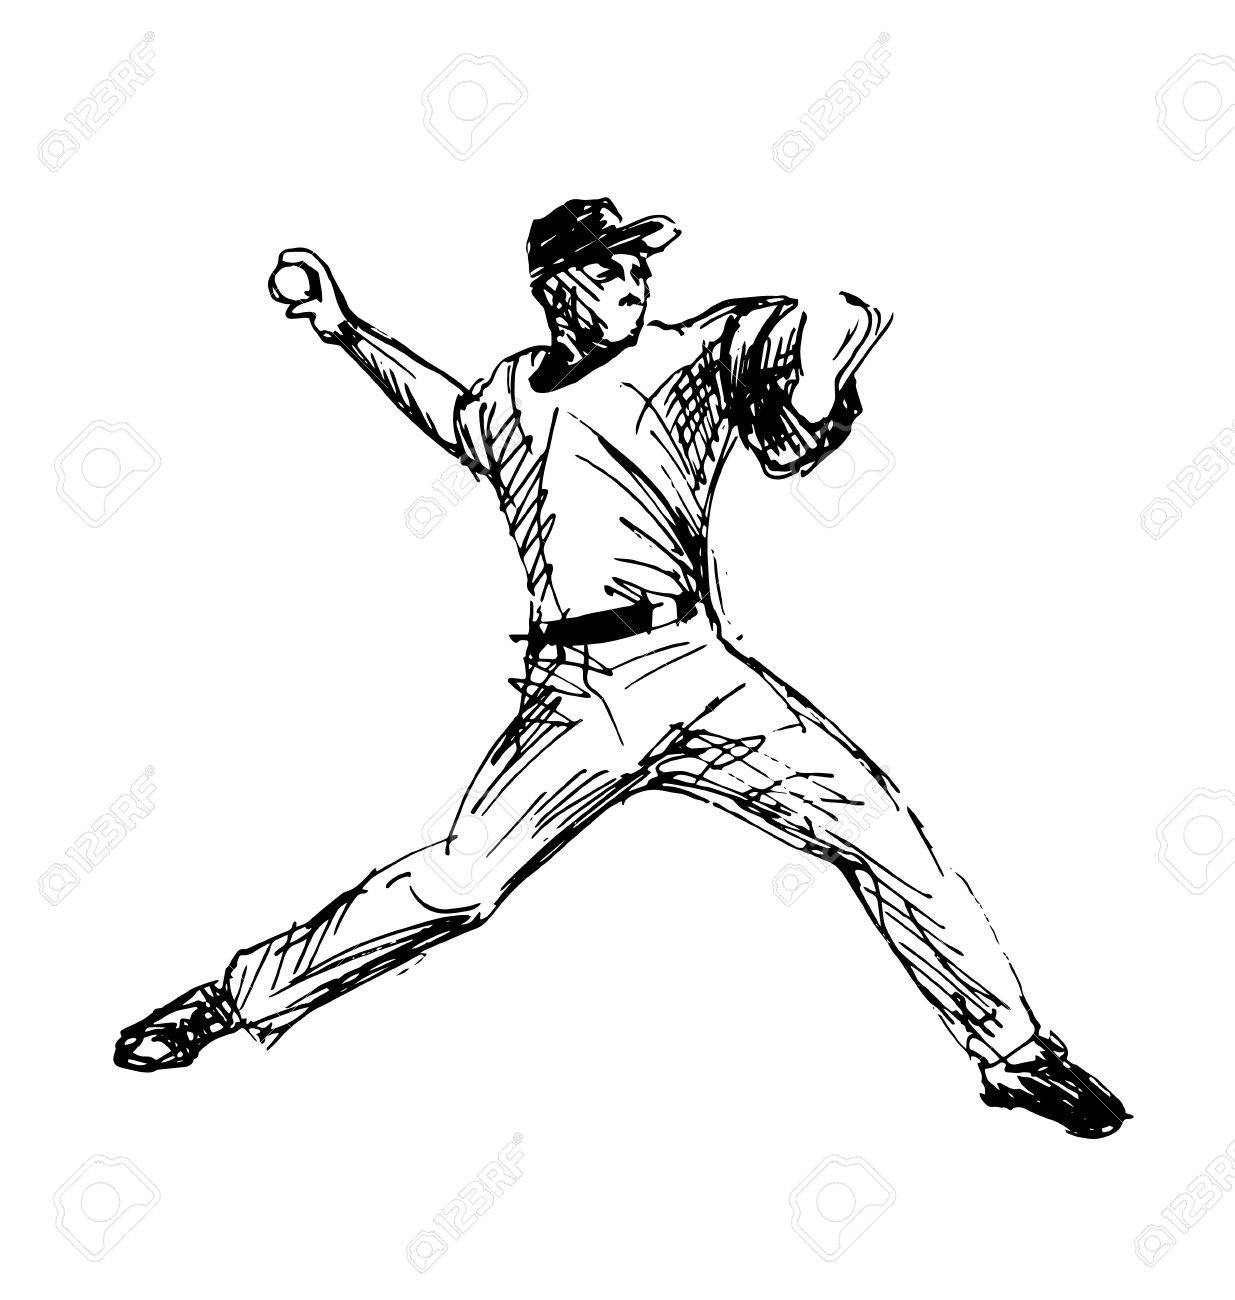 hand sketch baseball player vector illustration royalty free rh 123rf com basketball player vectors basketball player victory from tacoma academy